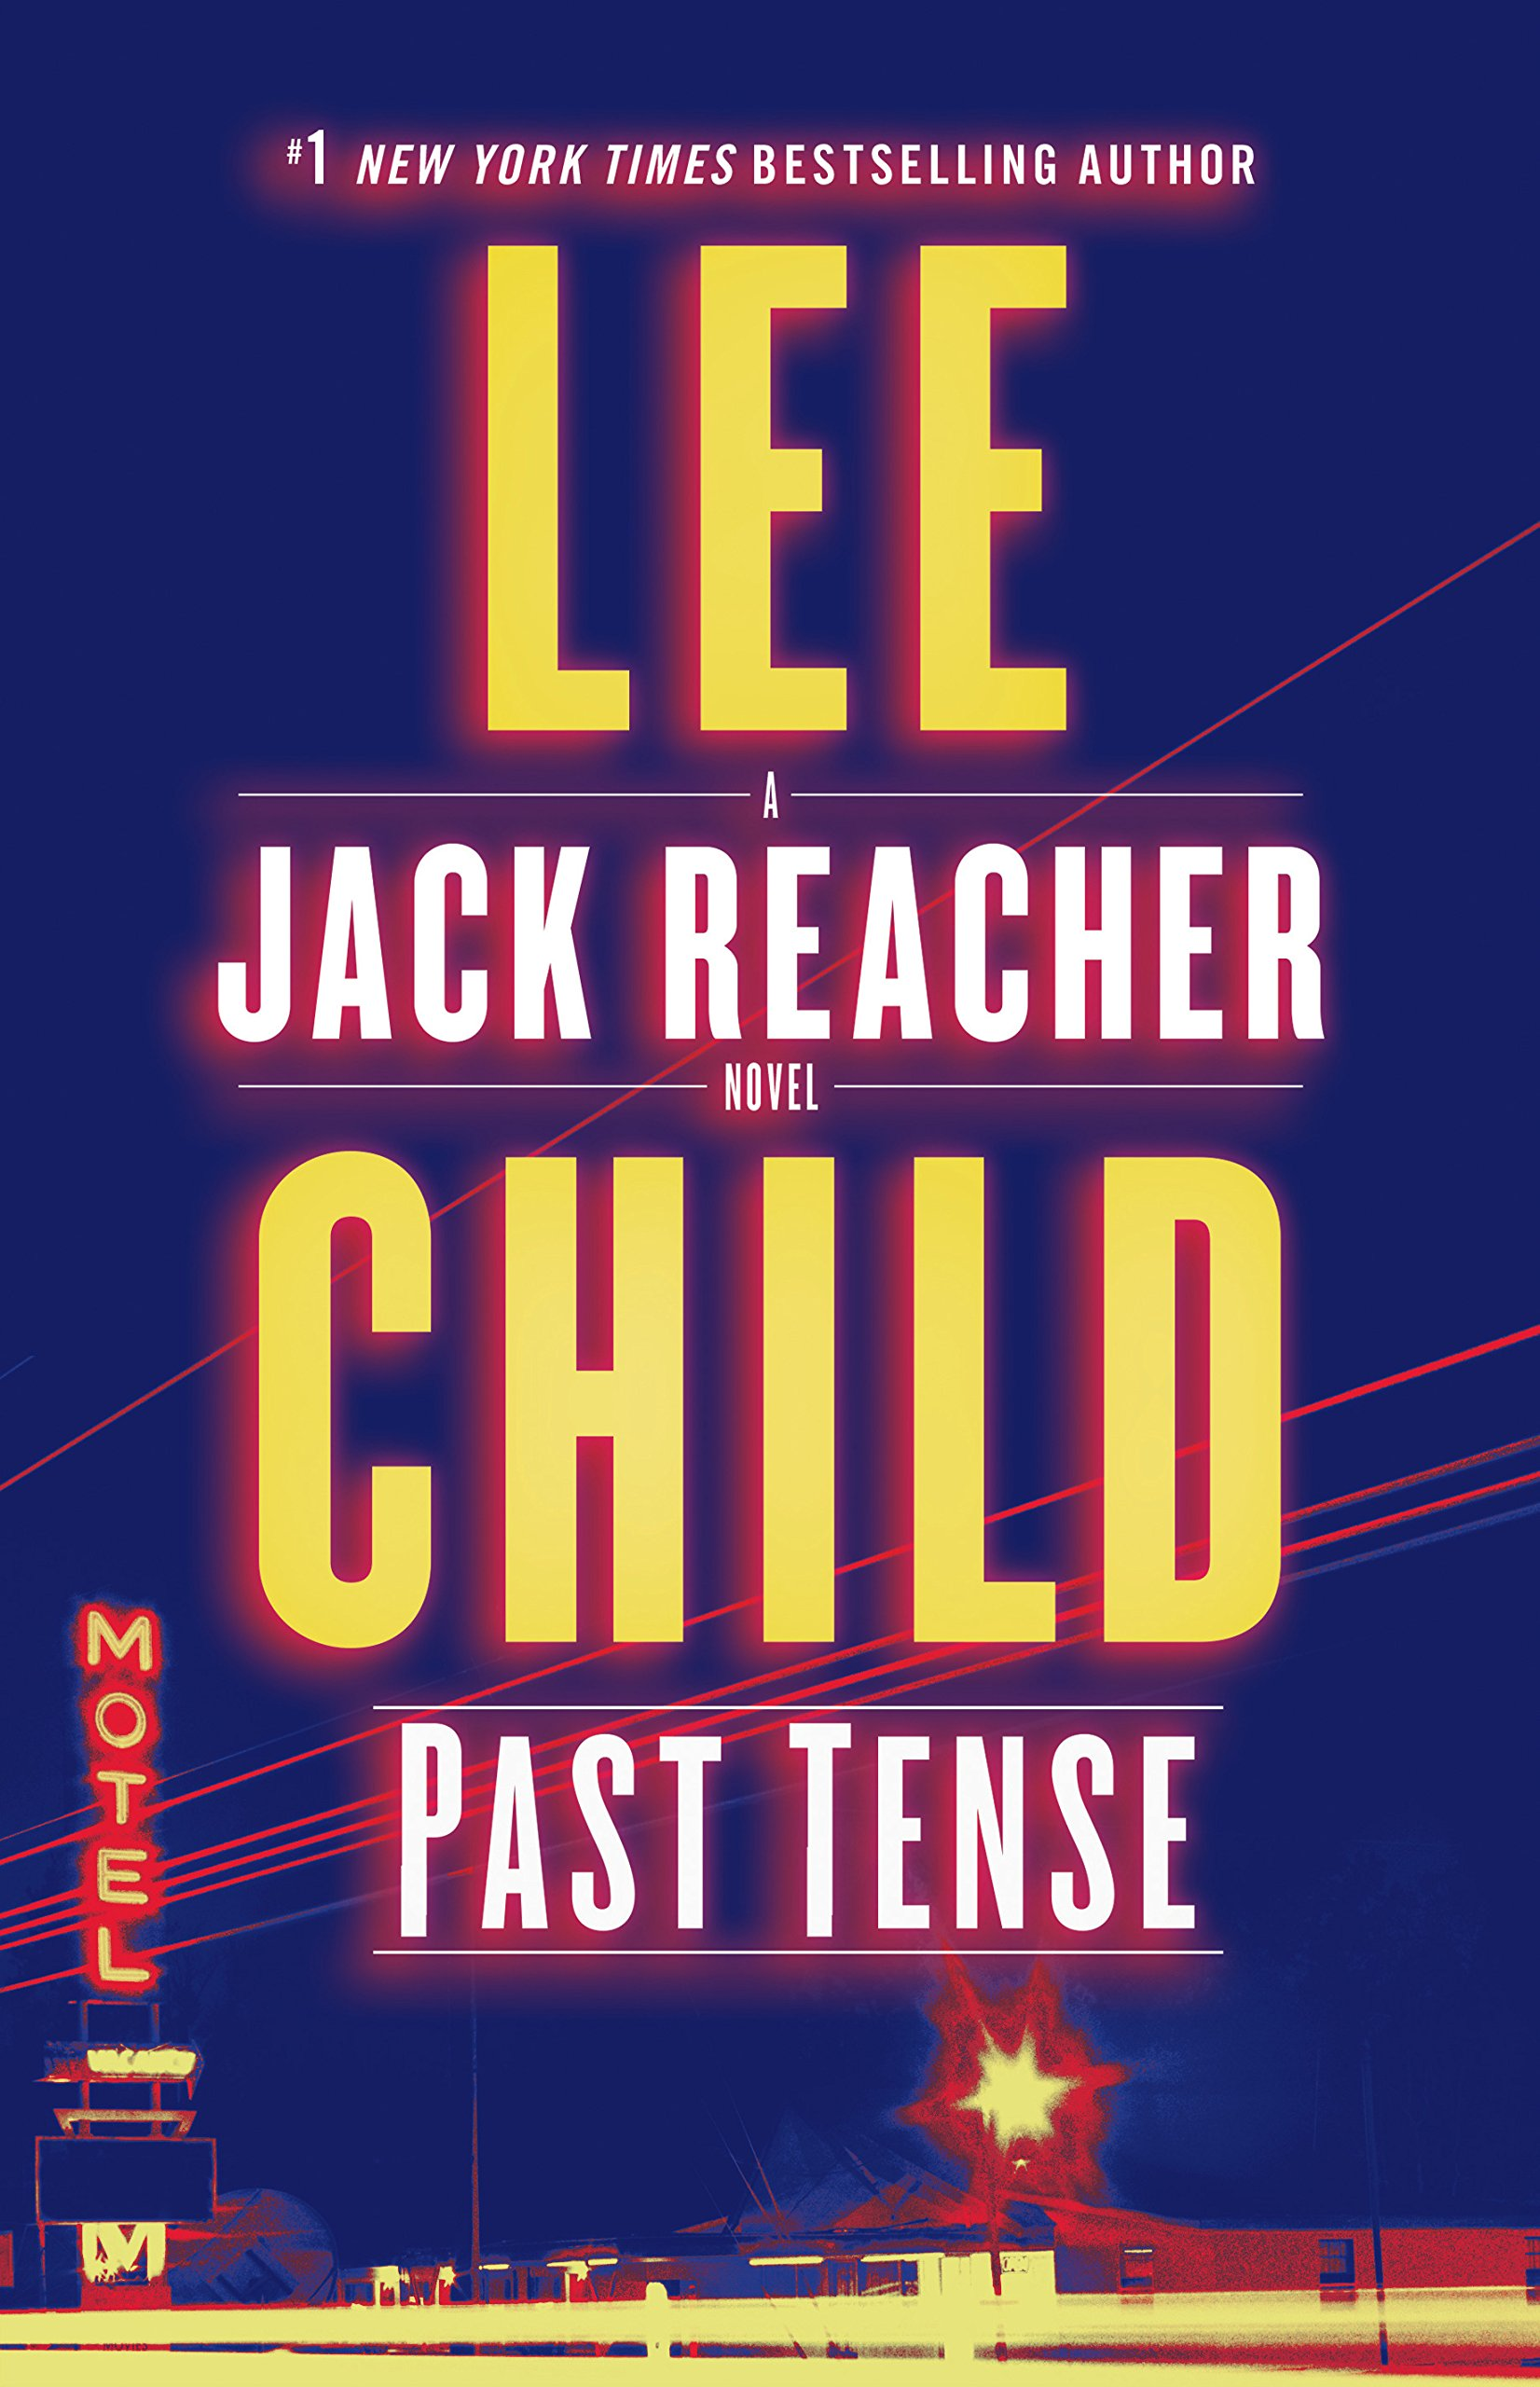 Image result for lee child past tense